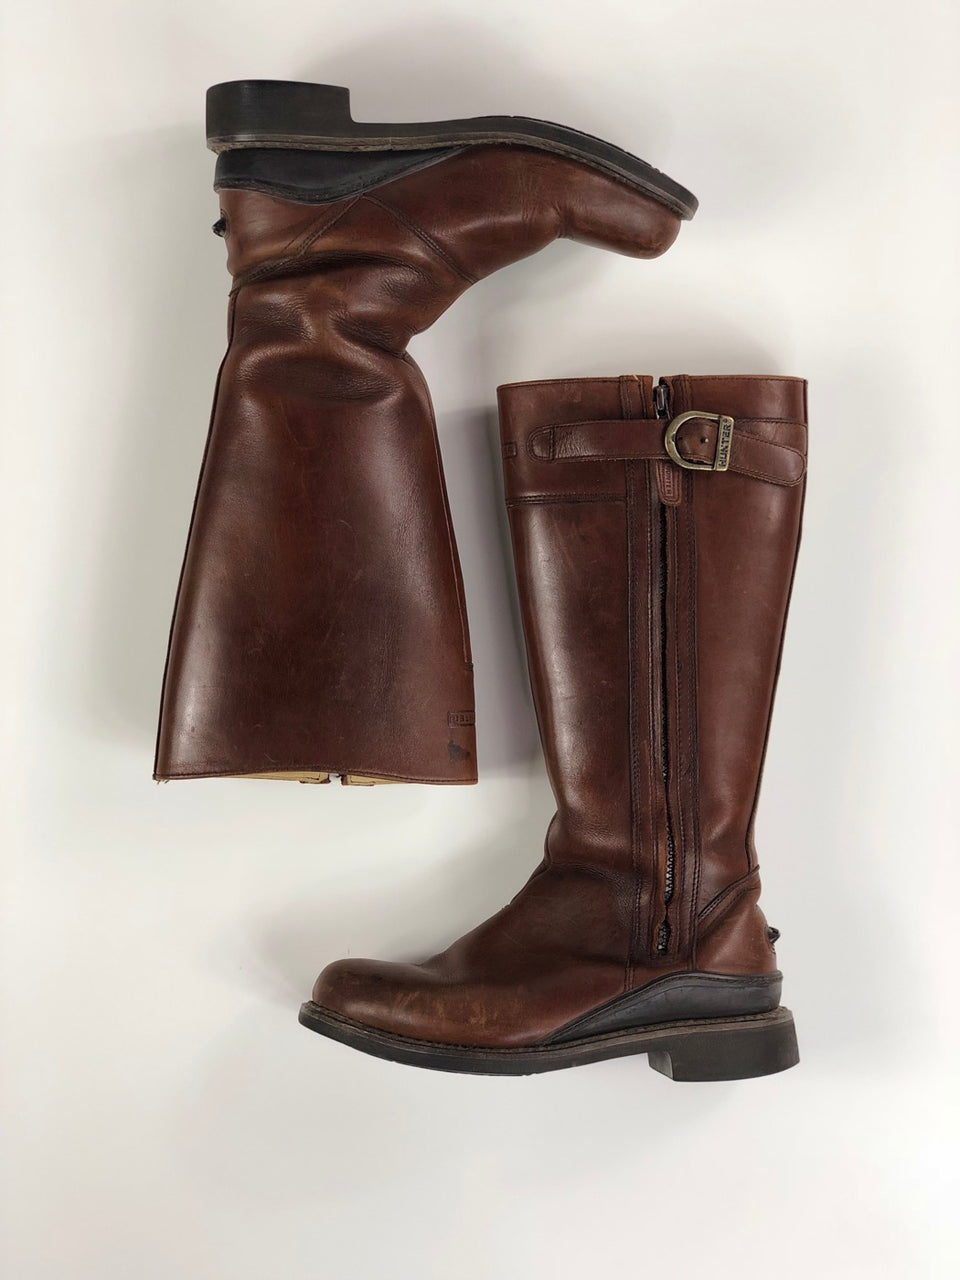 Hunter Hamilton Leather Boots in Brown - Women's EU 37